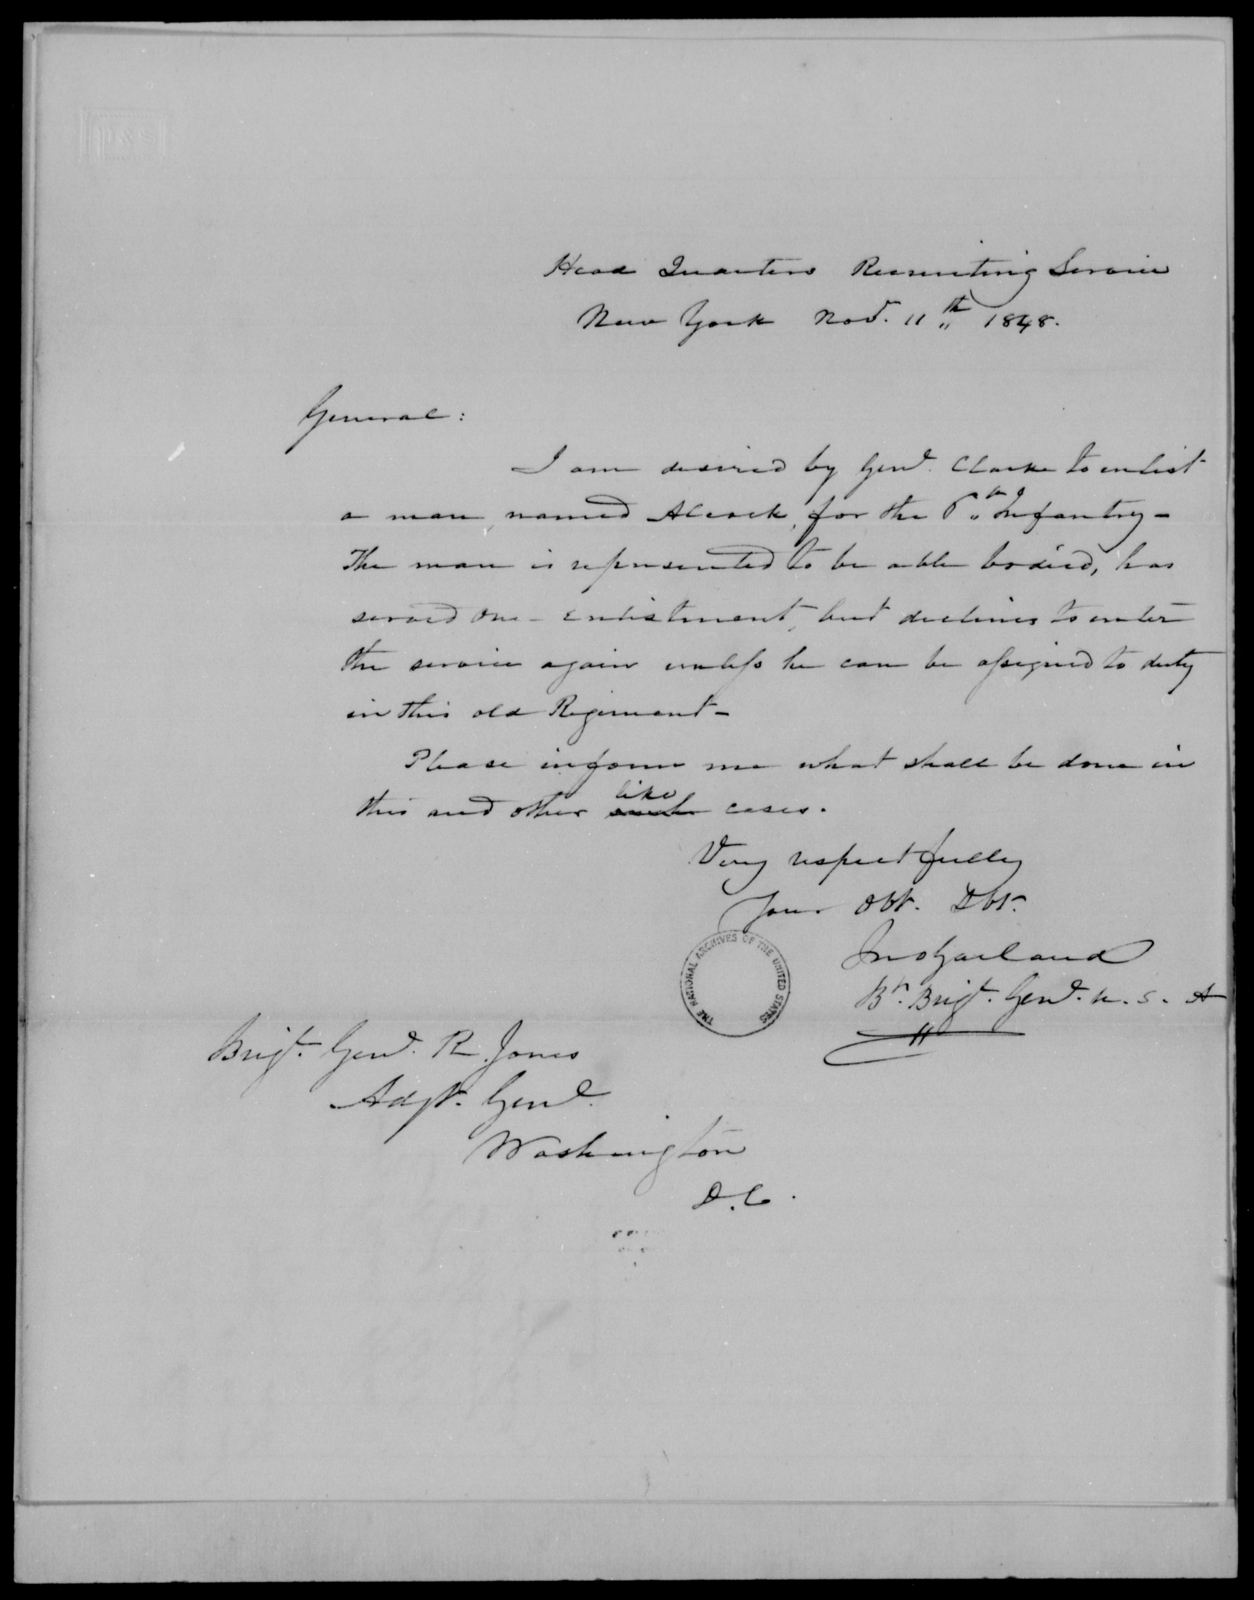 Garland, Jno - State: New York - Year: 1848 - File Number: G541